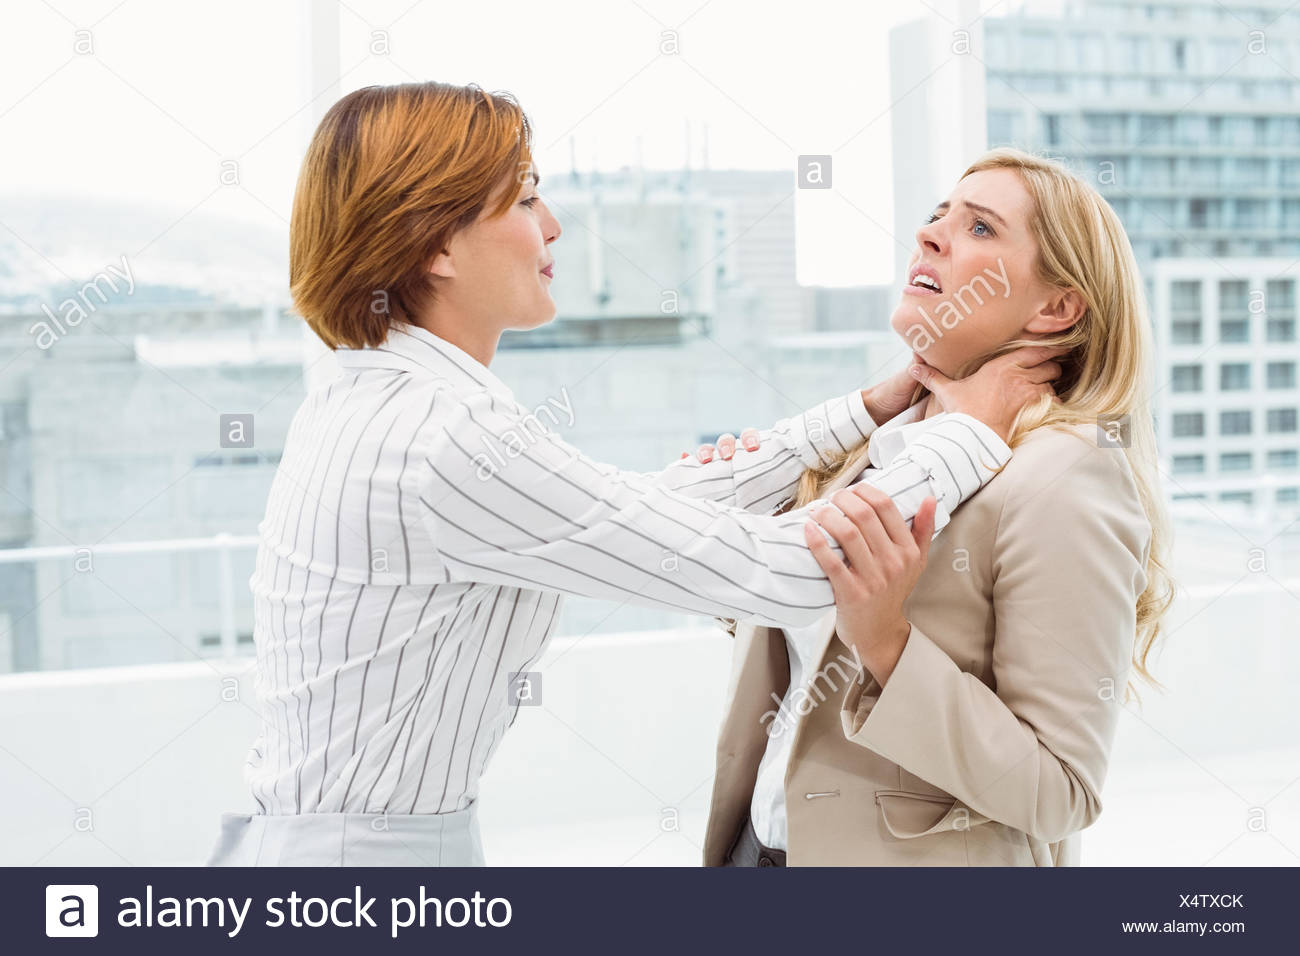 Businesswomen having a violent fight in office - Stock Image